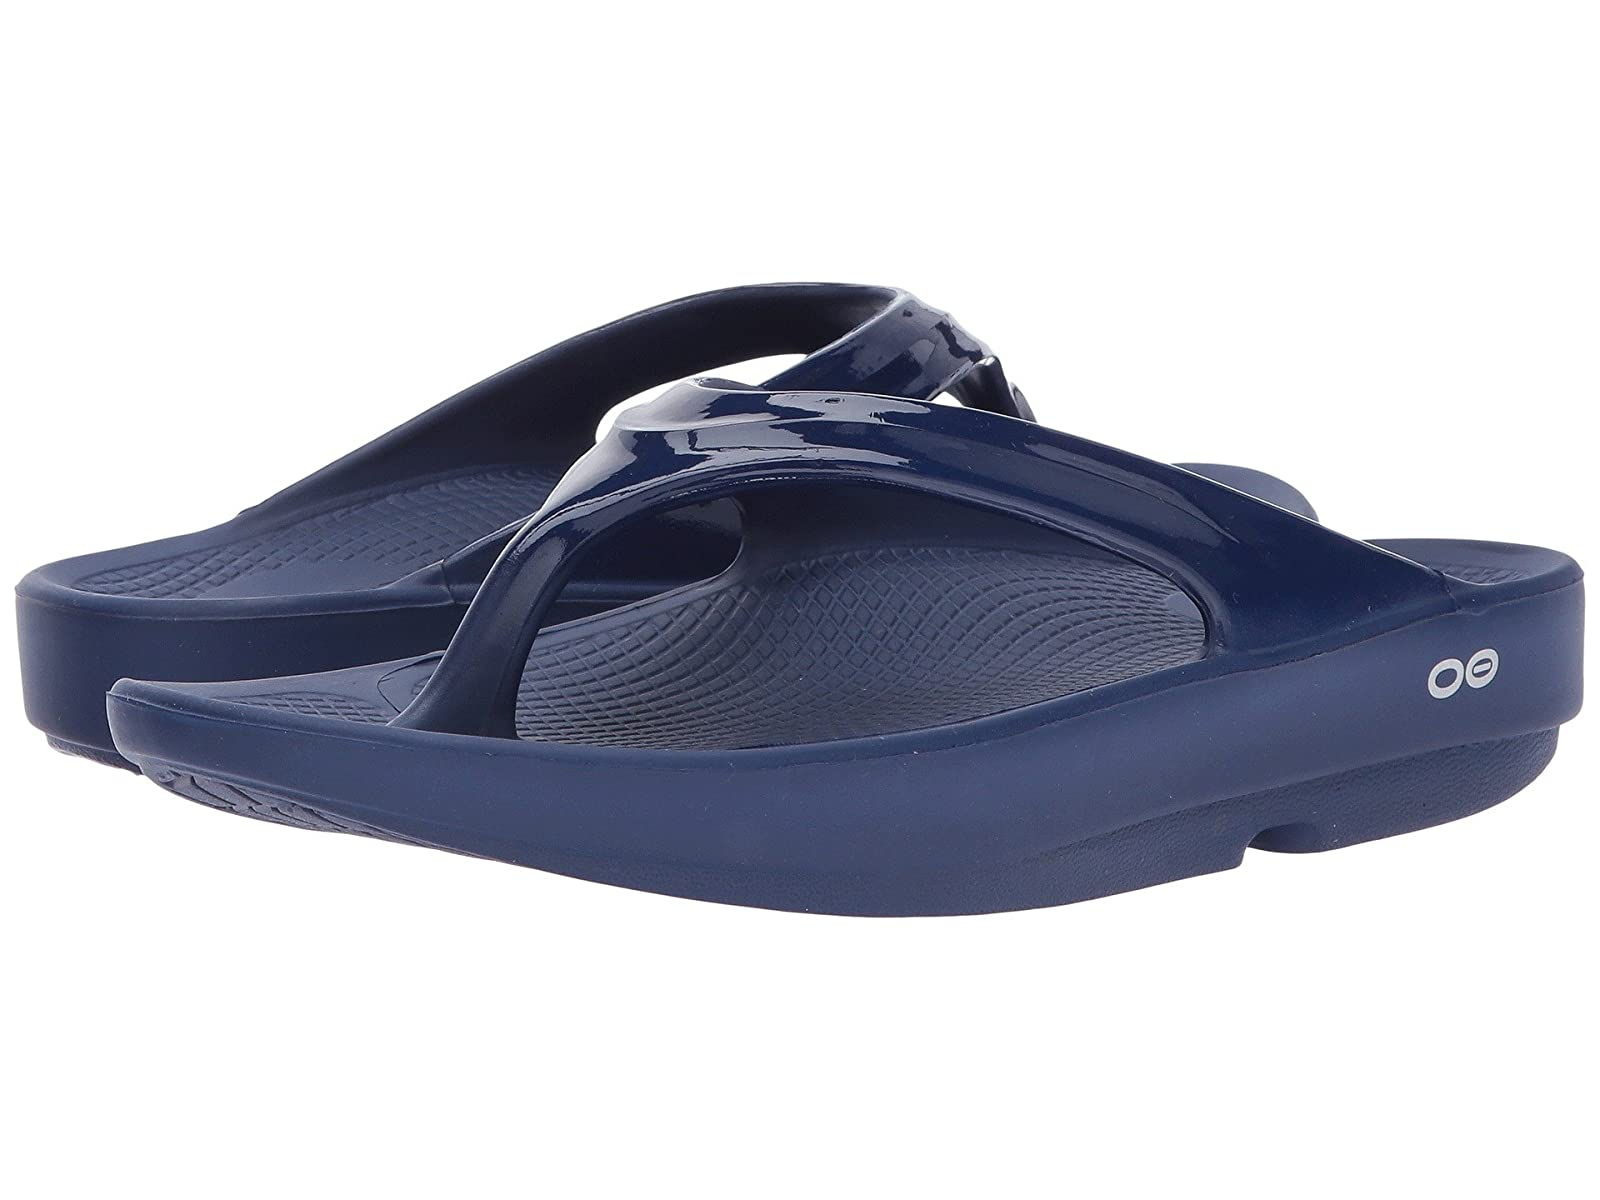 OOFOS OOlala SandalAtmospheric grades have affordable shoes